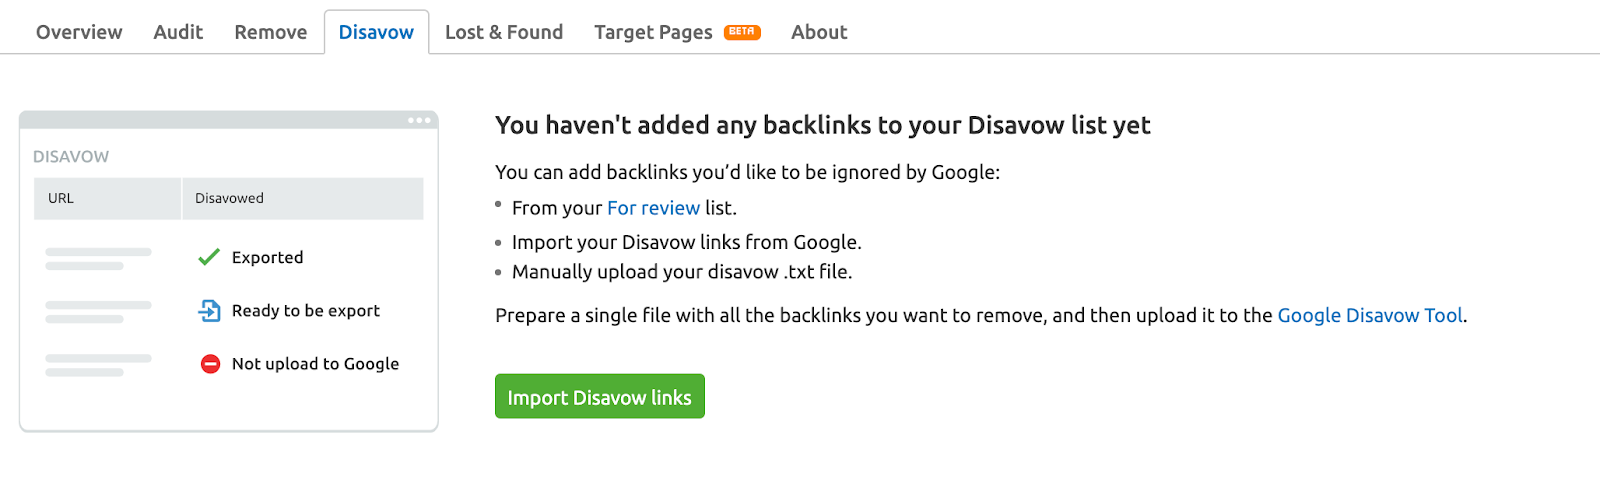 How to upload your disavow file